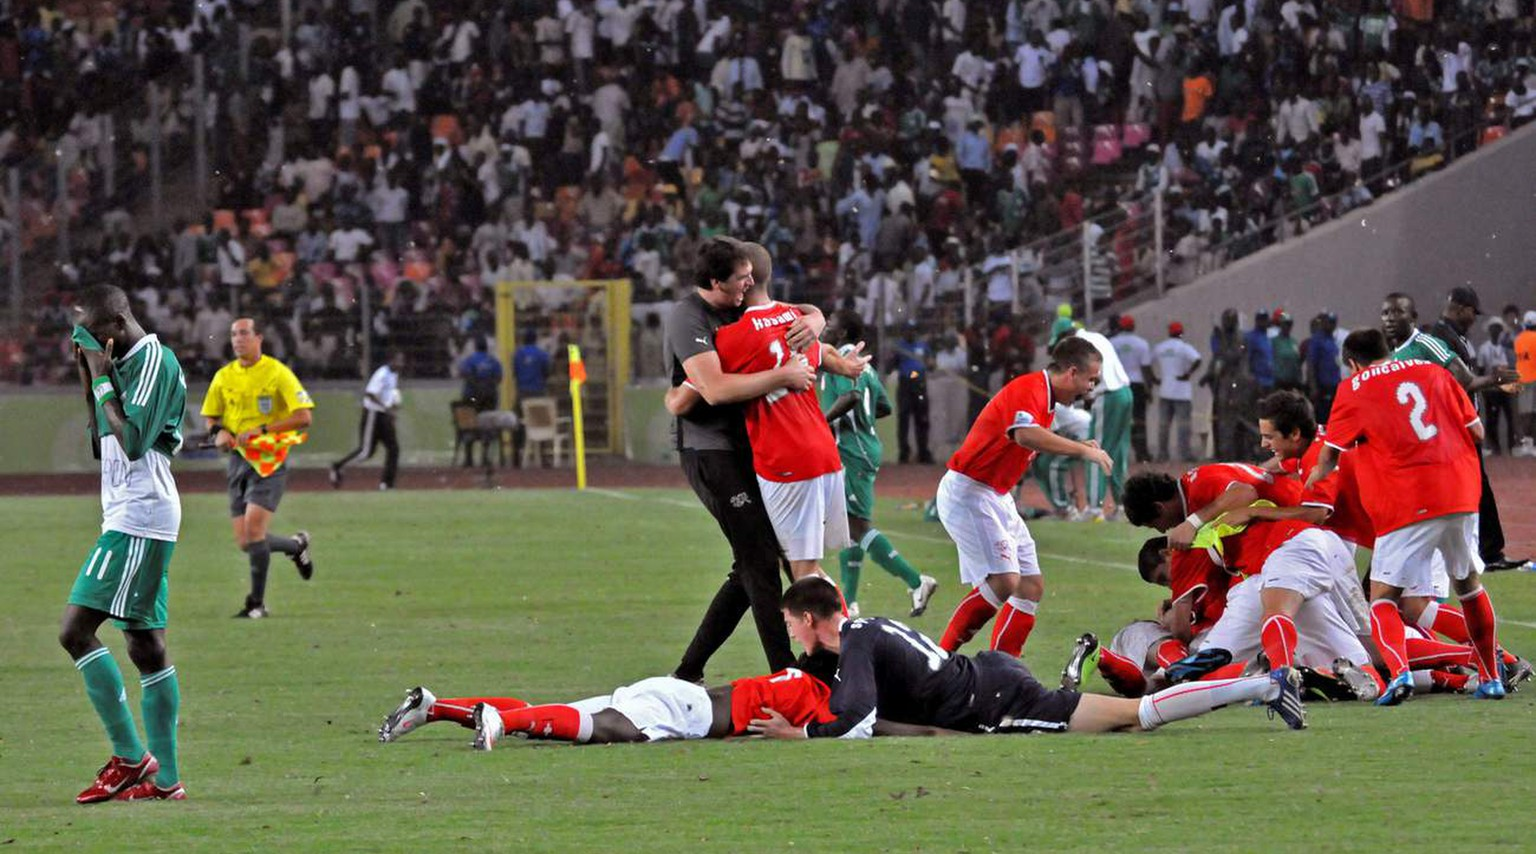 Switzerland  soccer players react after beating Nigeria during their U 17 World Cup soccer Final match in Abuja, Nigeria, Sunday, Nov. 15, 2009. (AP Photo/Sunday Alamba)